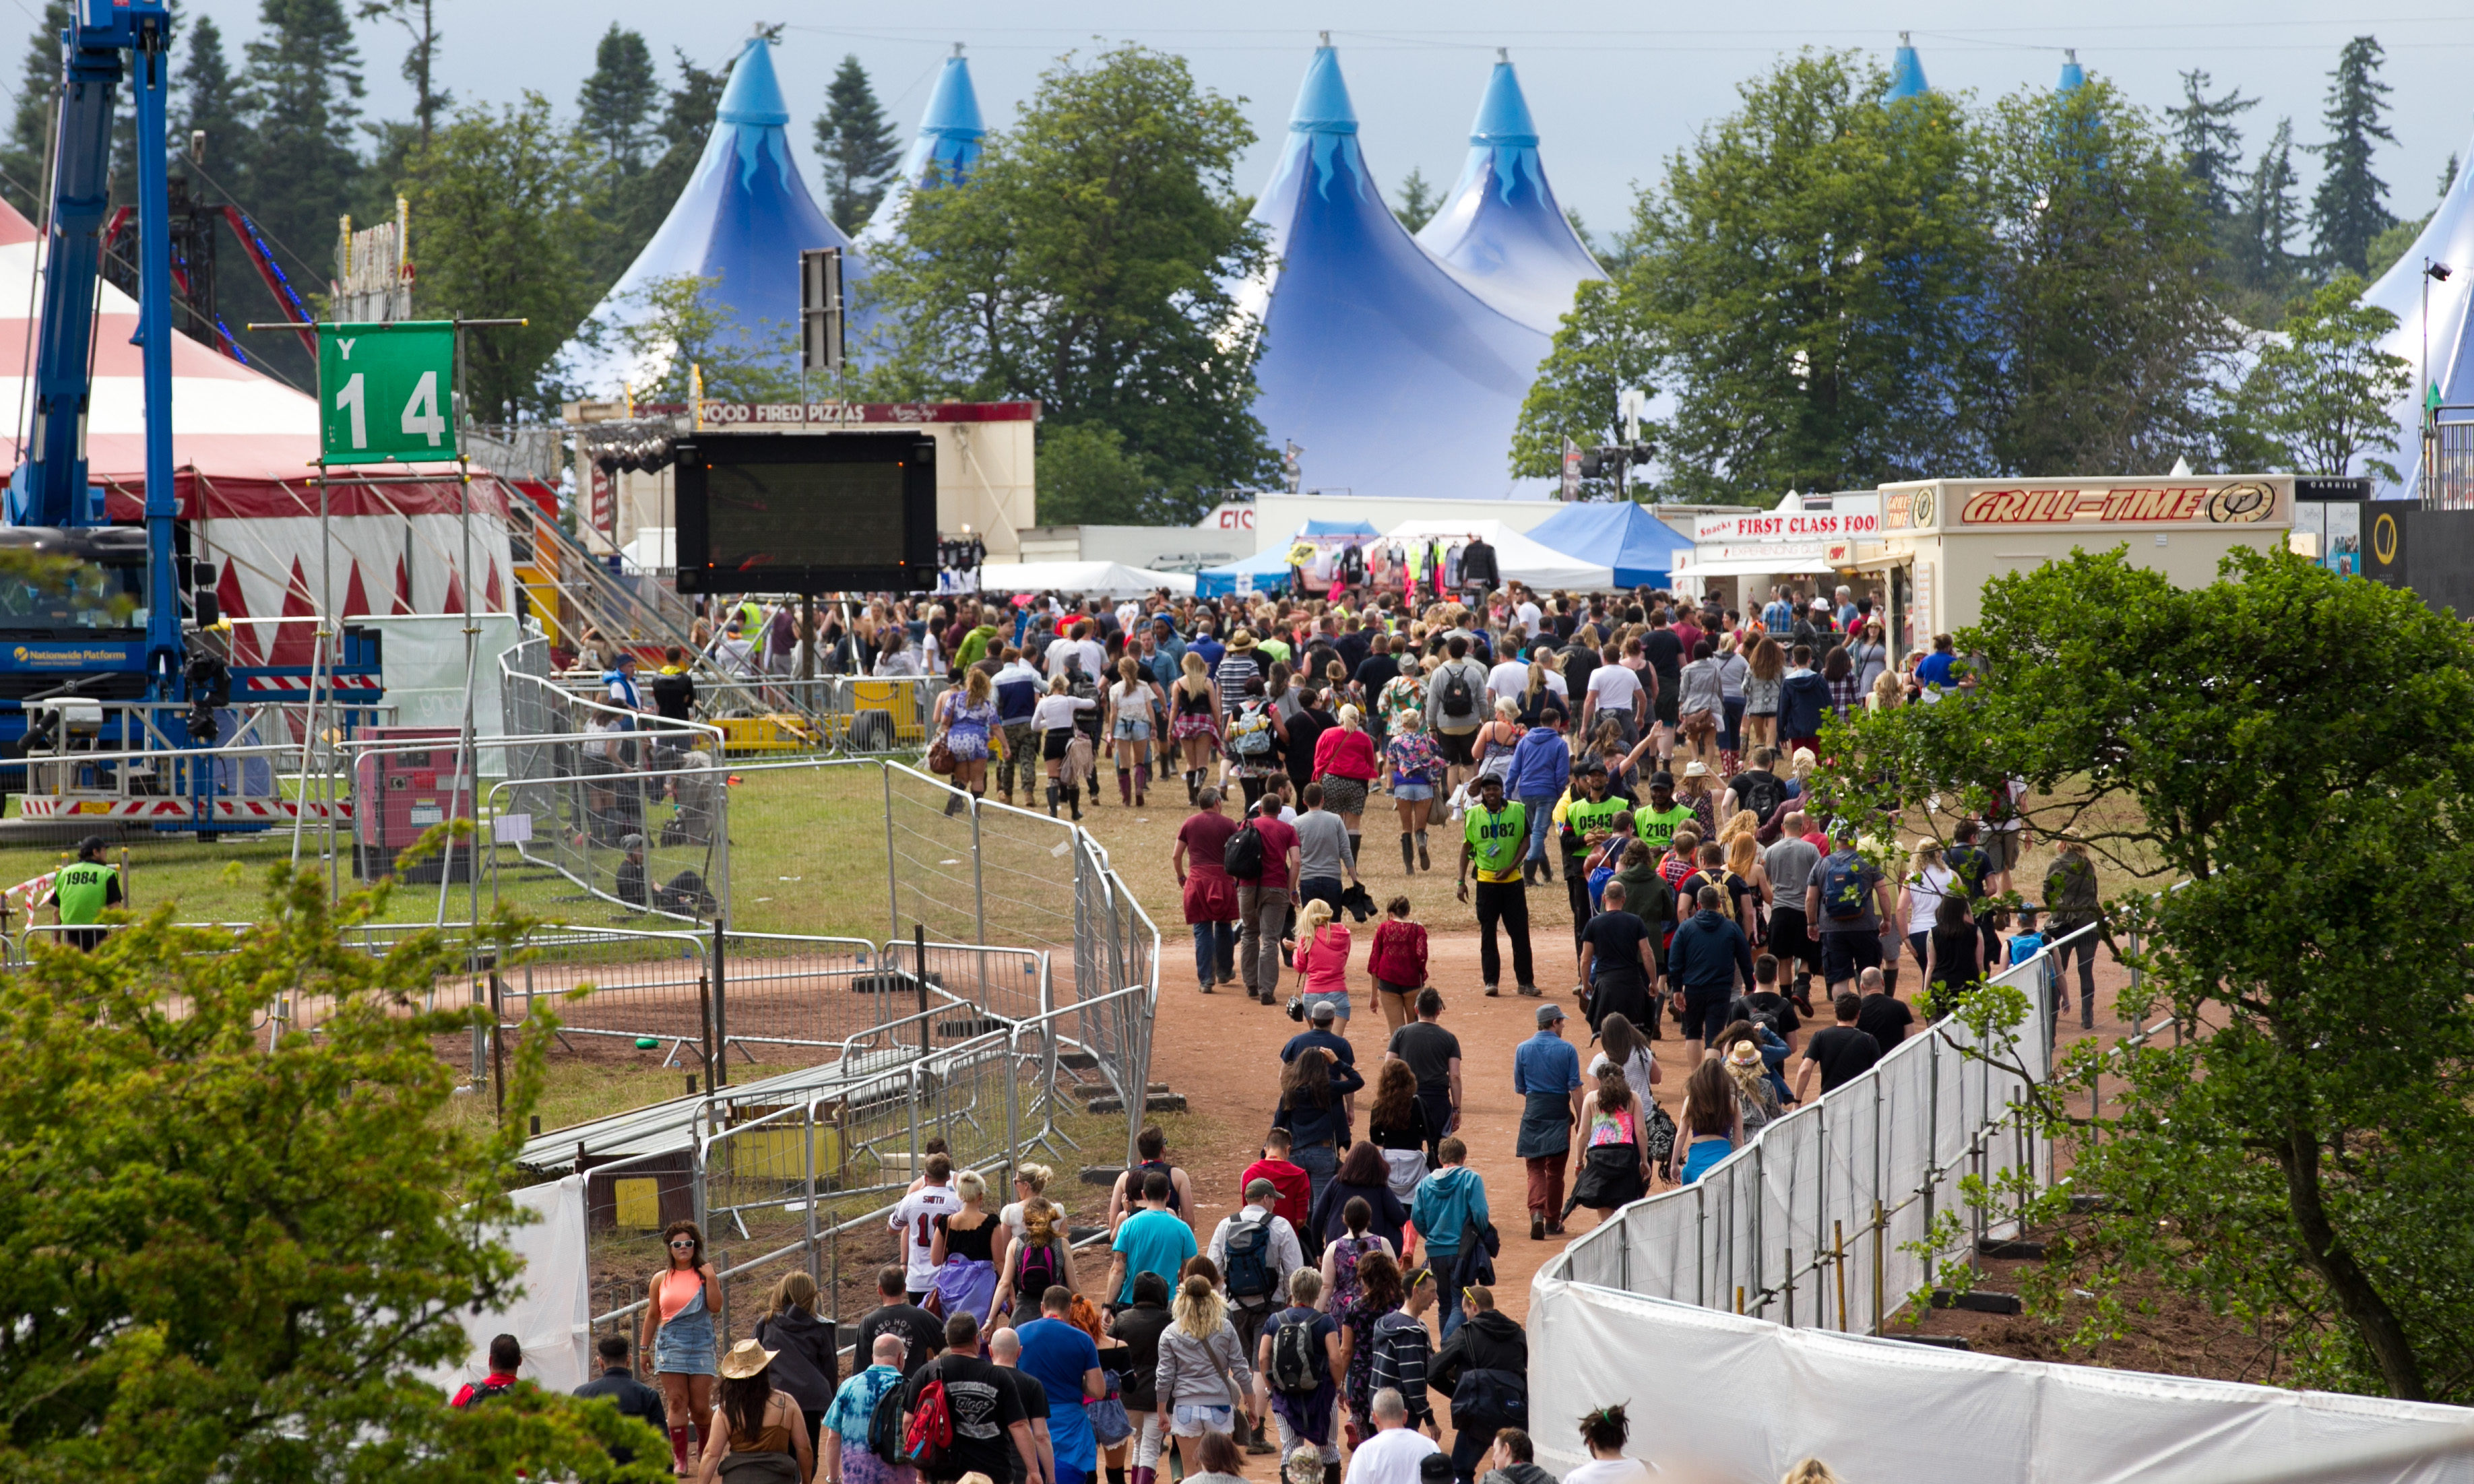 Infrastructure has been left in place after the last T in the Park festival in 2016.